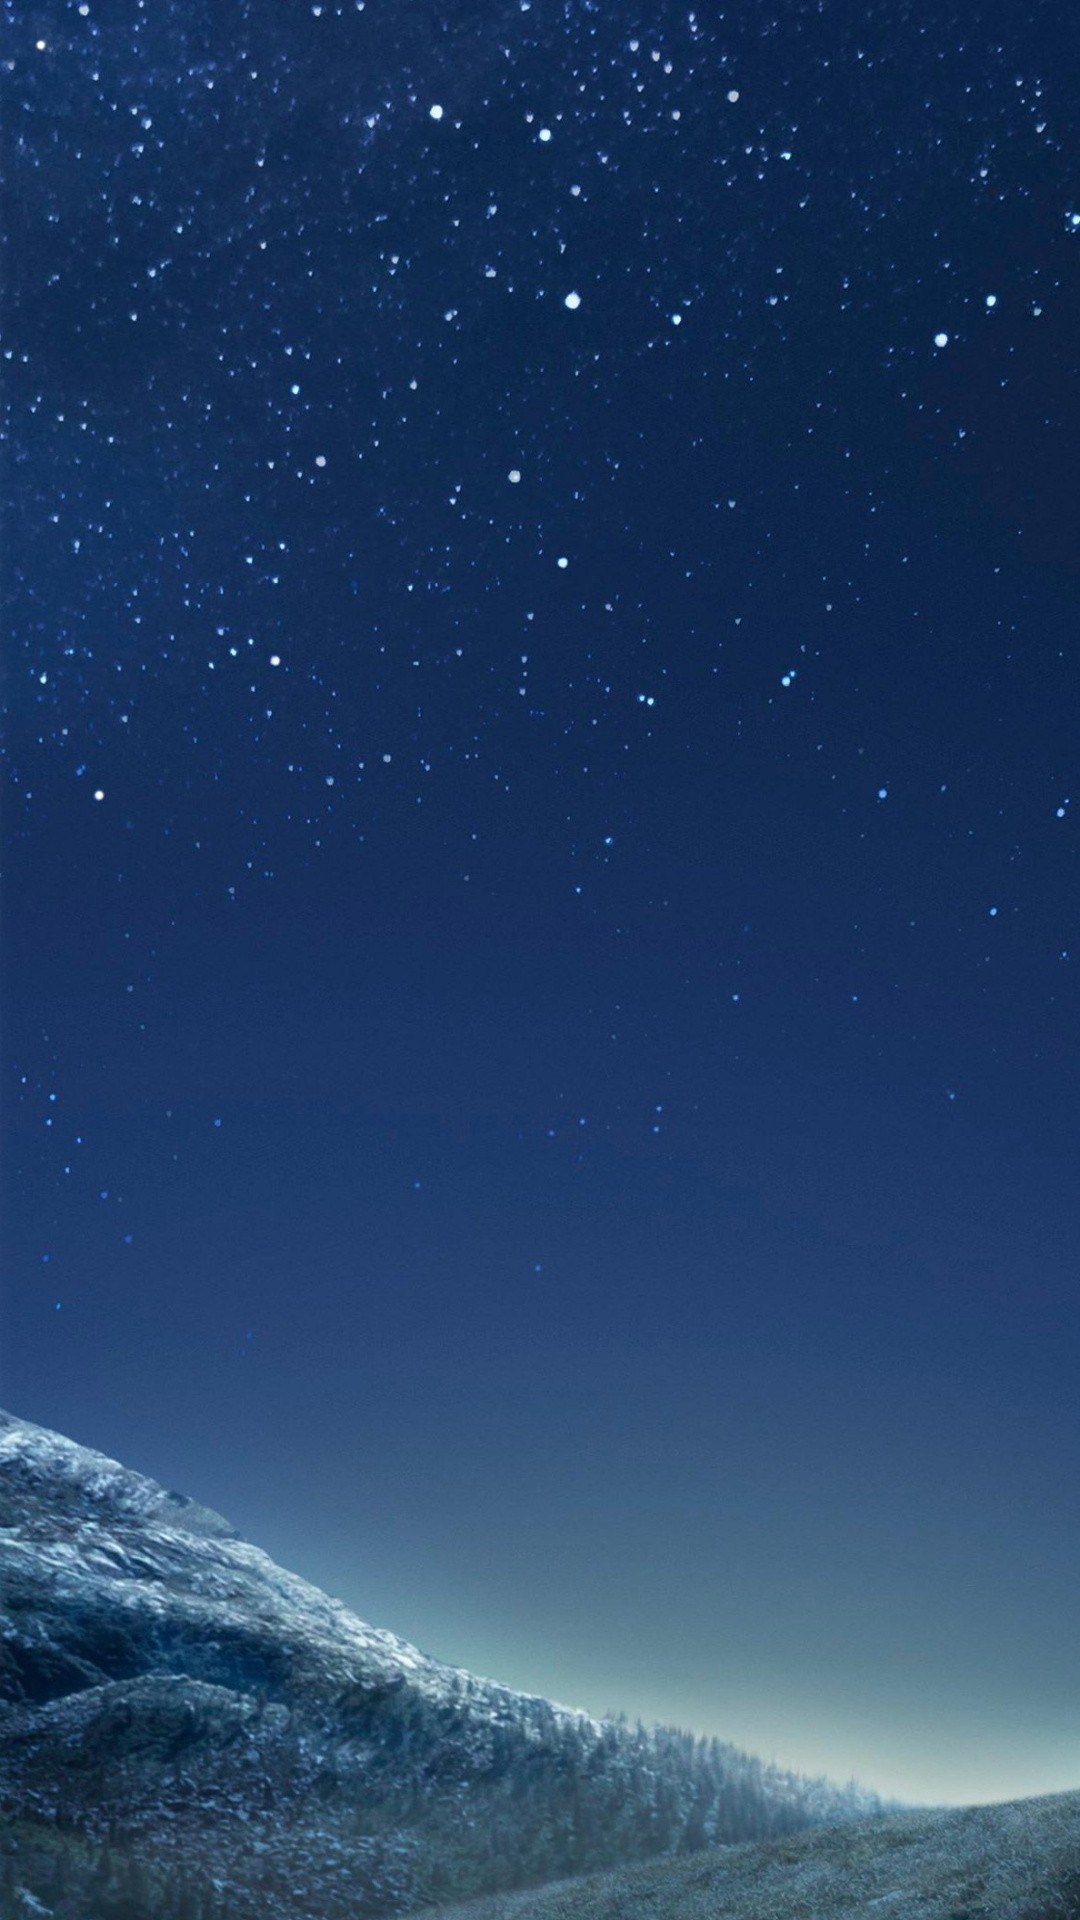 Samsung Galaxy S8 Wallpaper   [1080x1920] 1080x1920